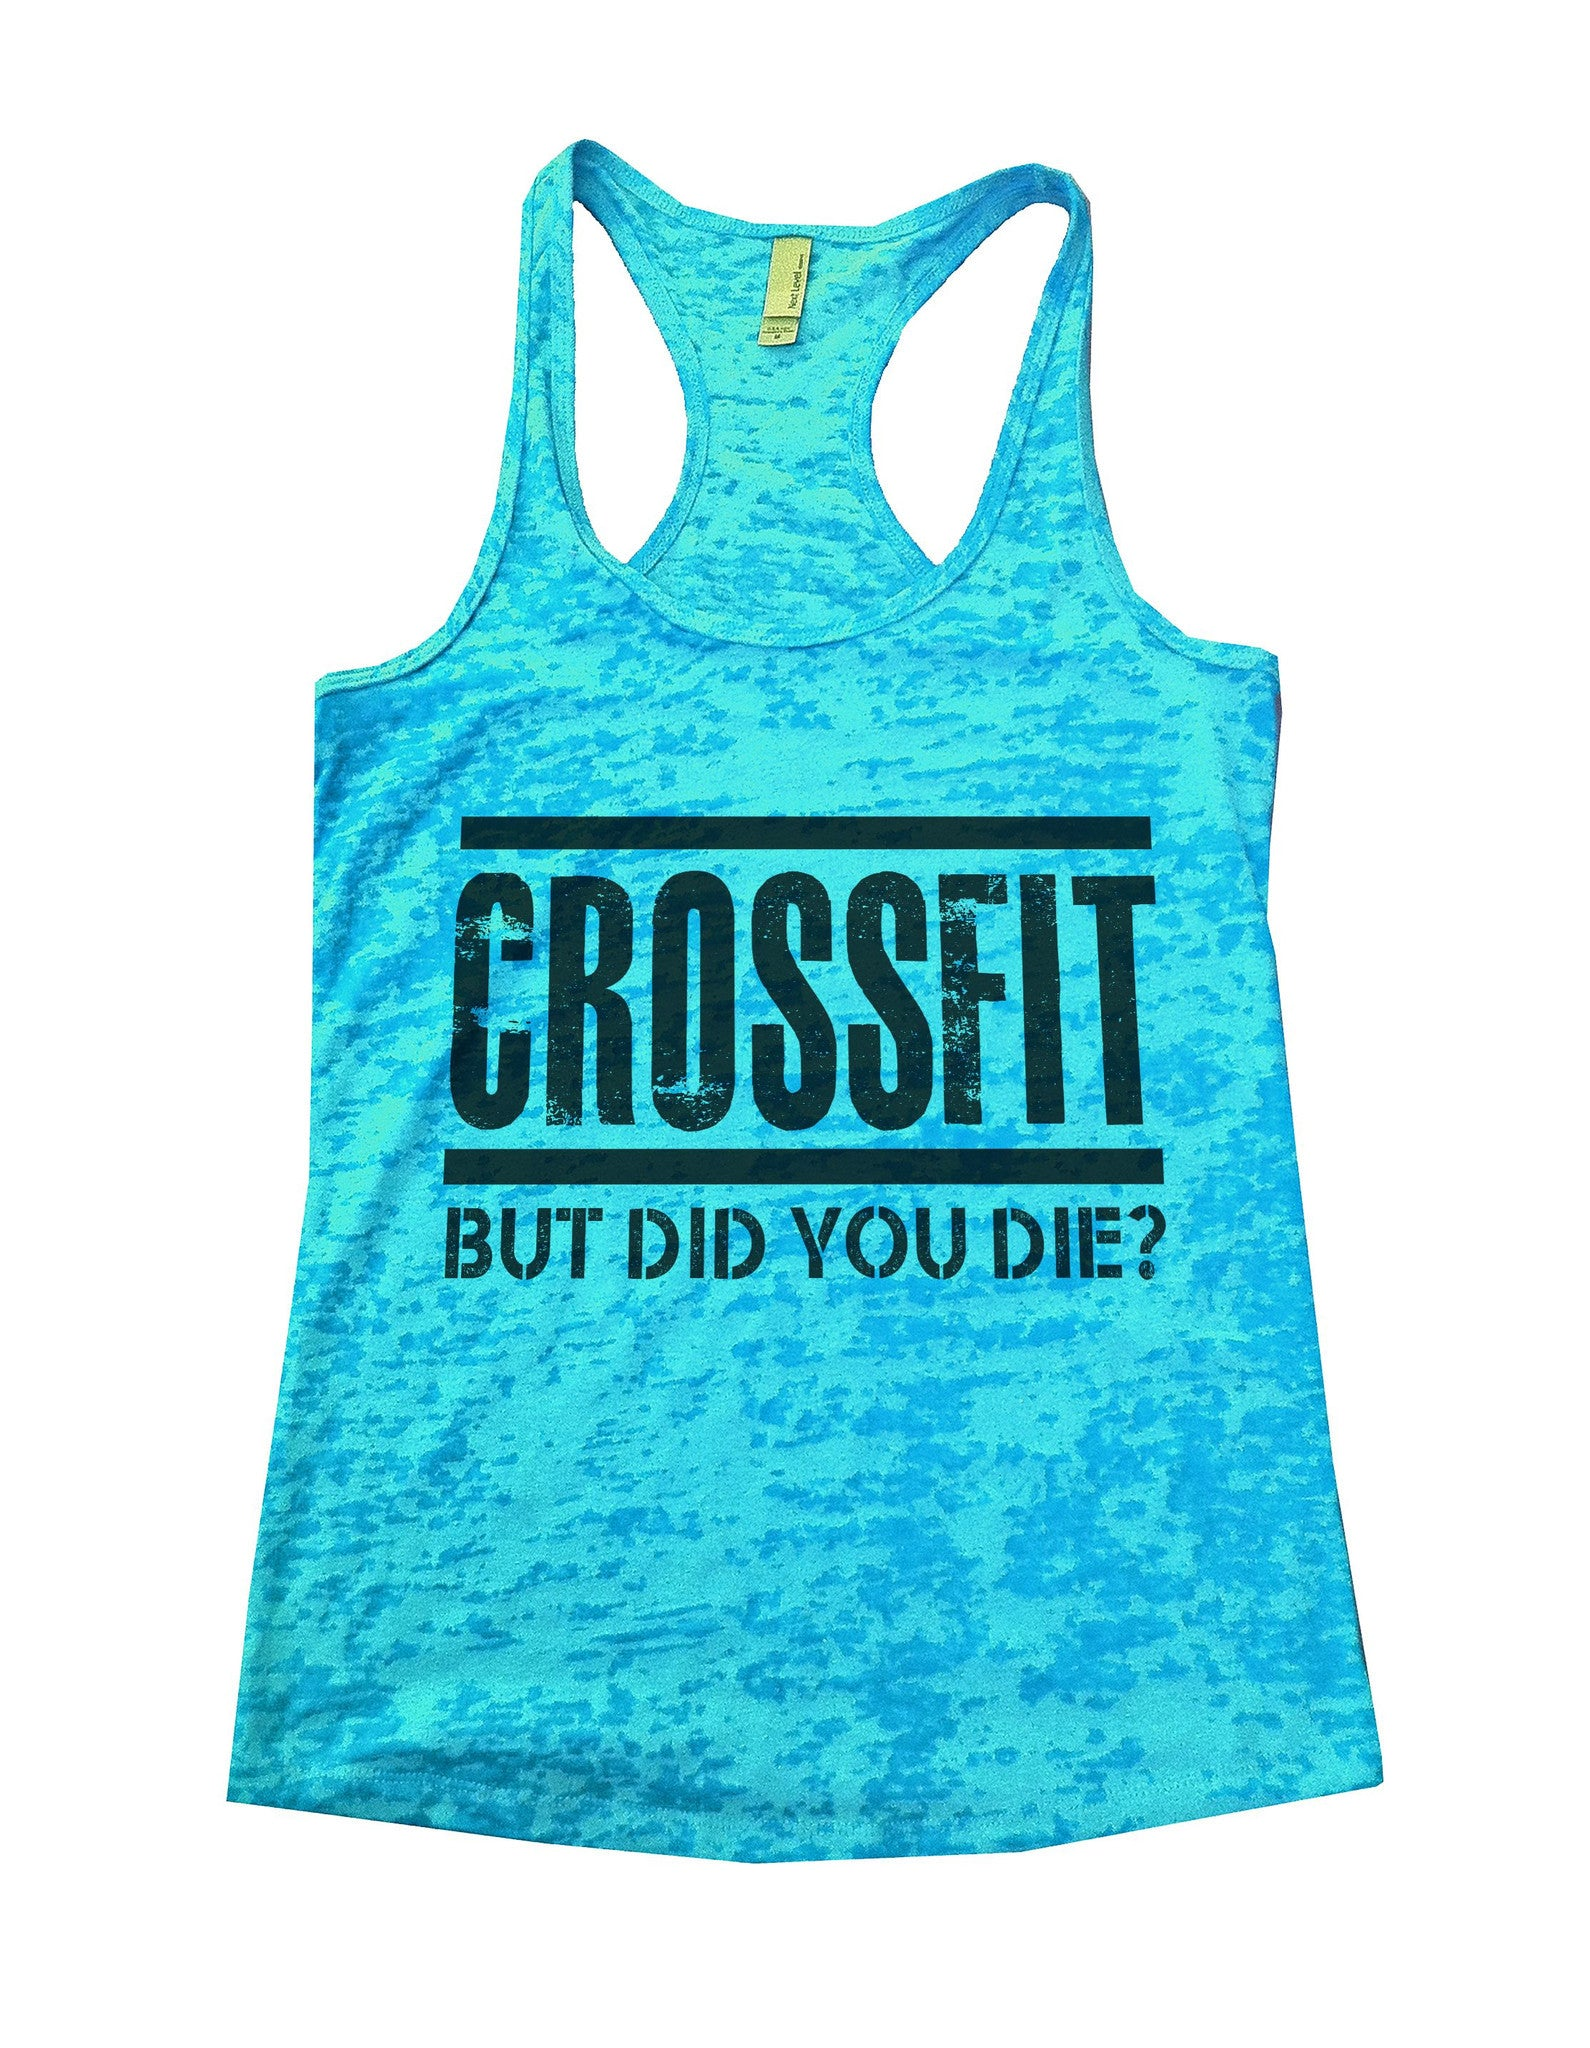 Crossfit But Did You Die Burnout Tank Top By BurnoutTankTops.com - 648 - Funny Shirts Tank Tops Burnouts and Triblends  - 1